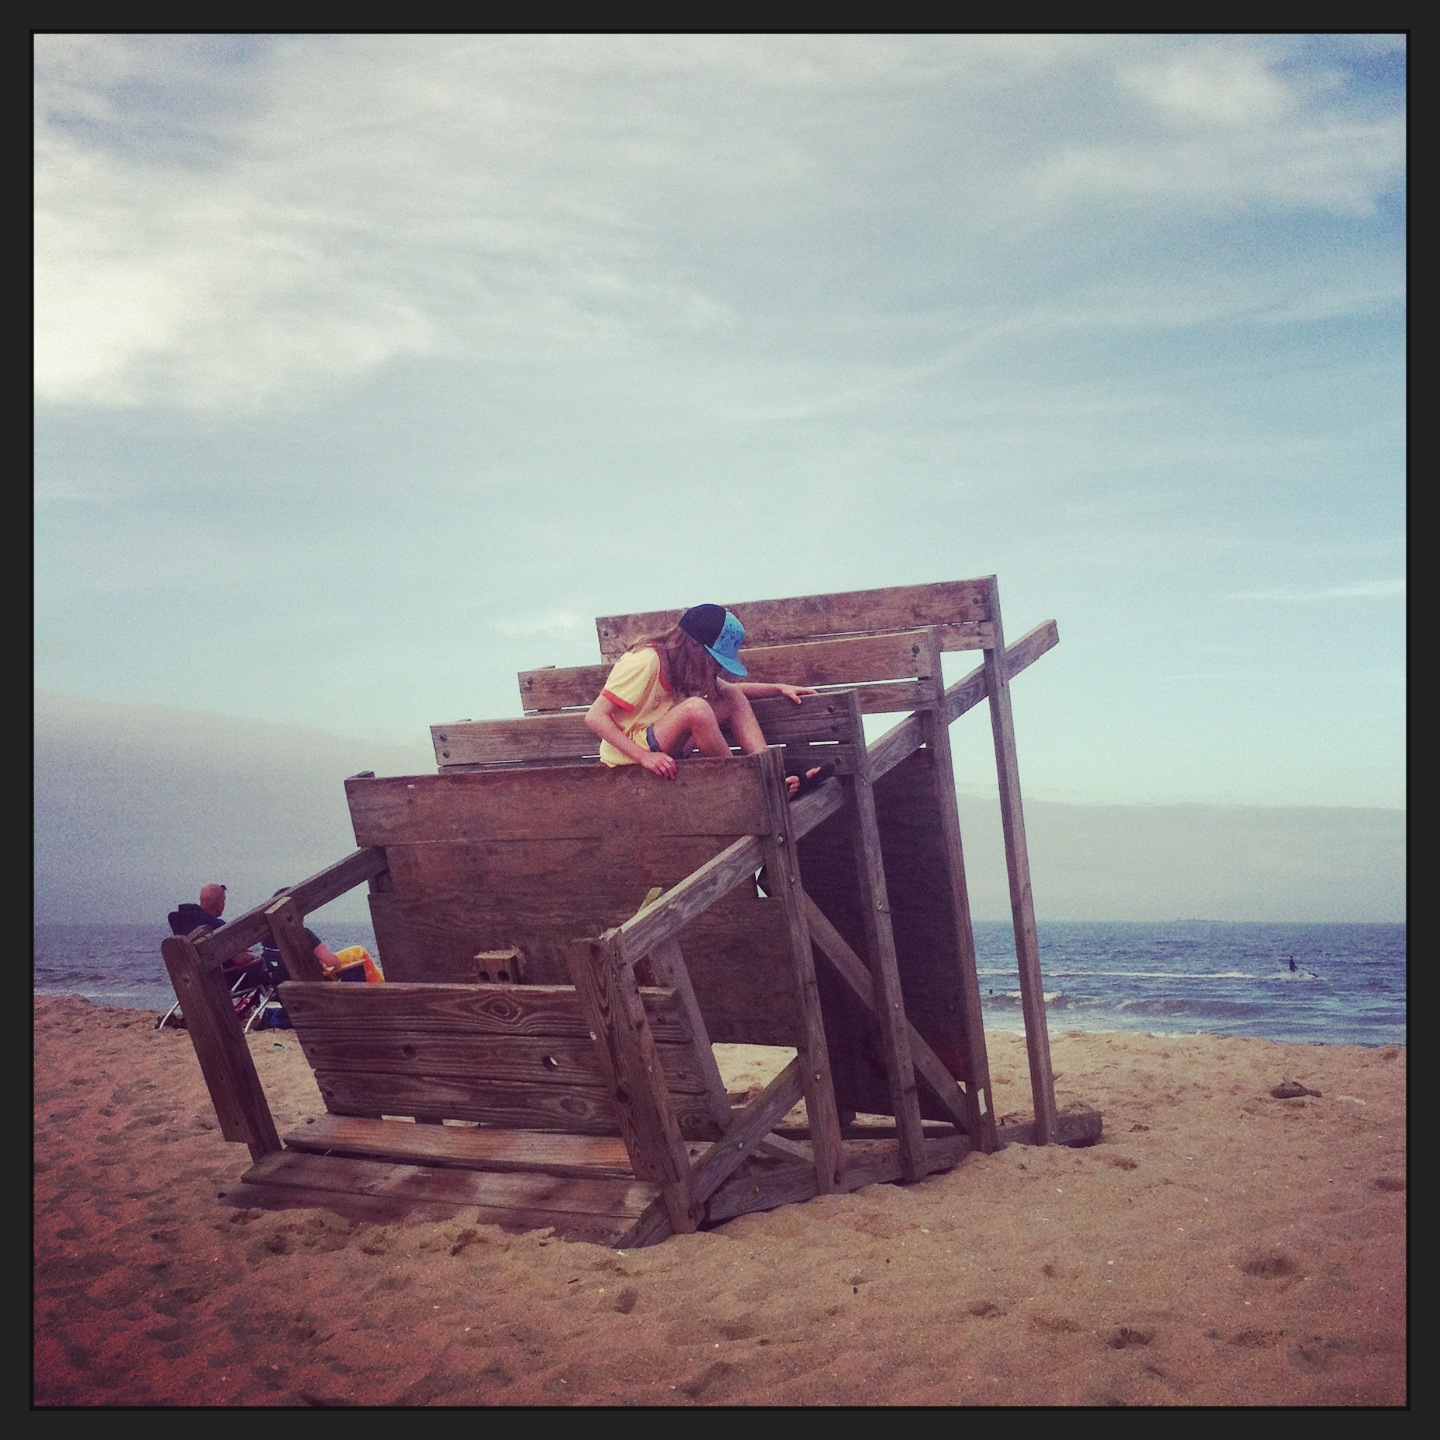 how to build a lifeguard chair adams adirondack chairs pdf make stand diy free plans download twin loft